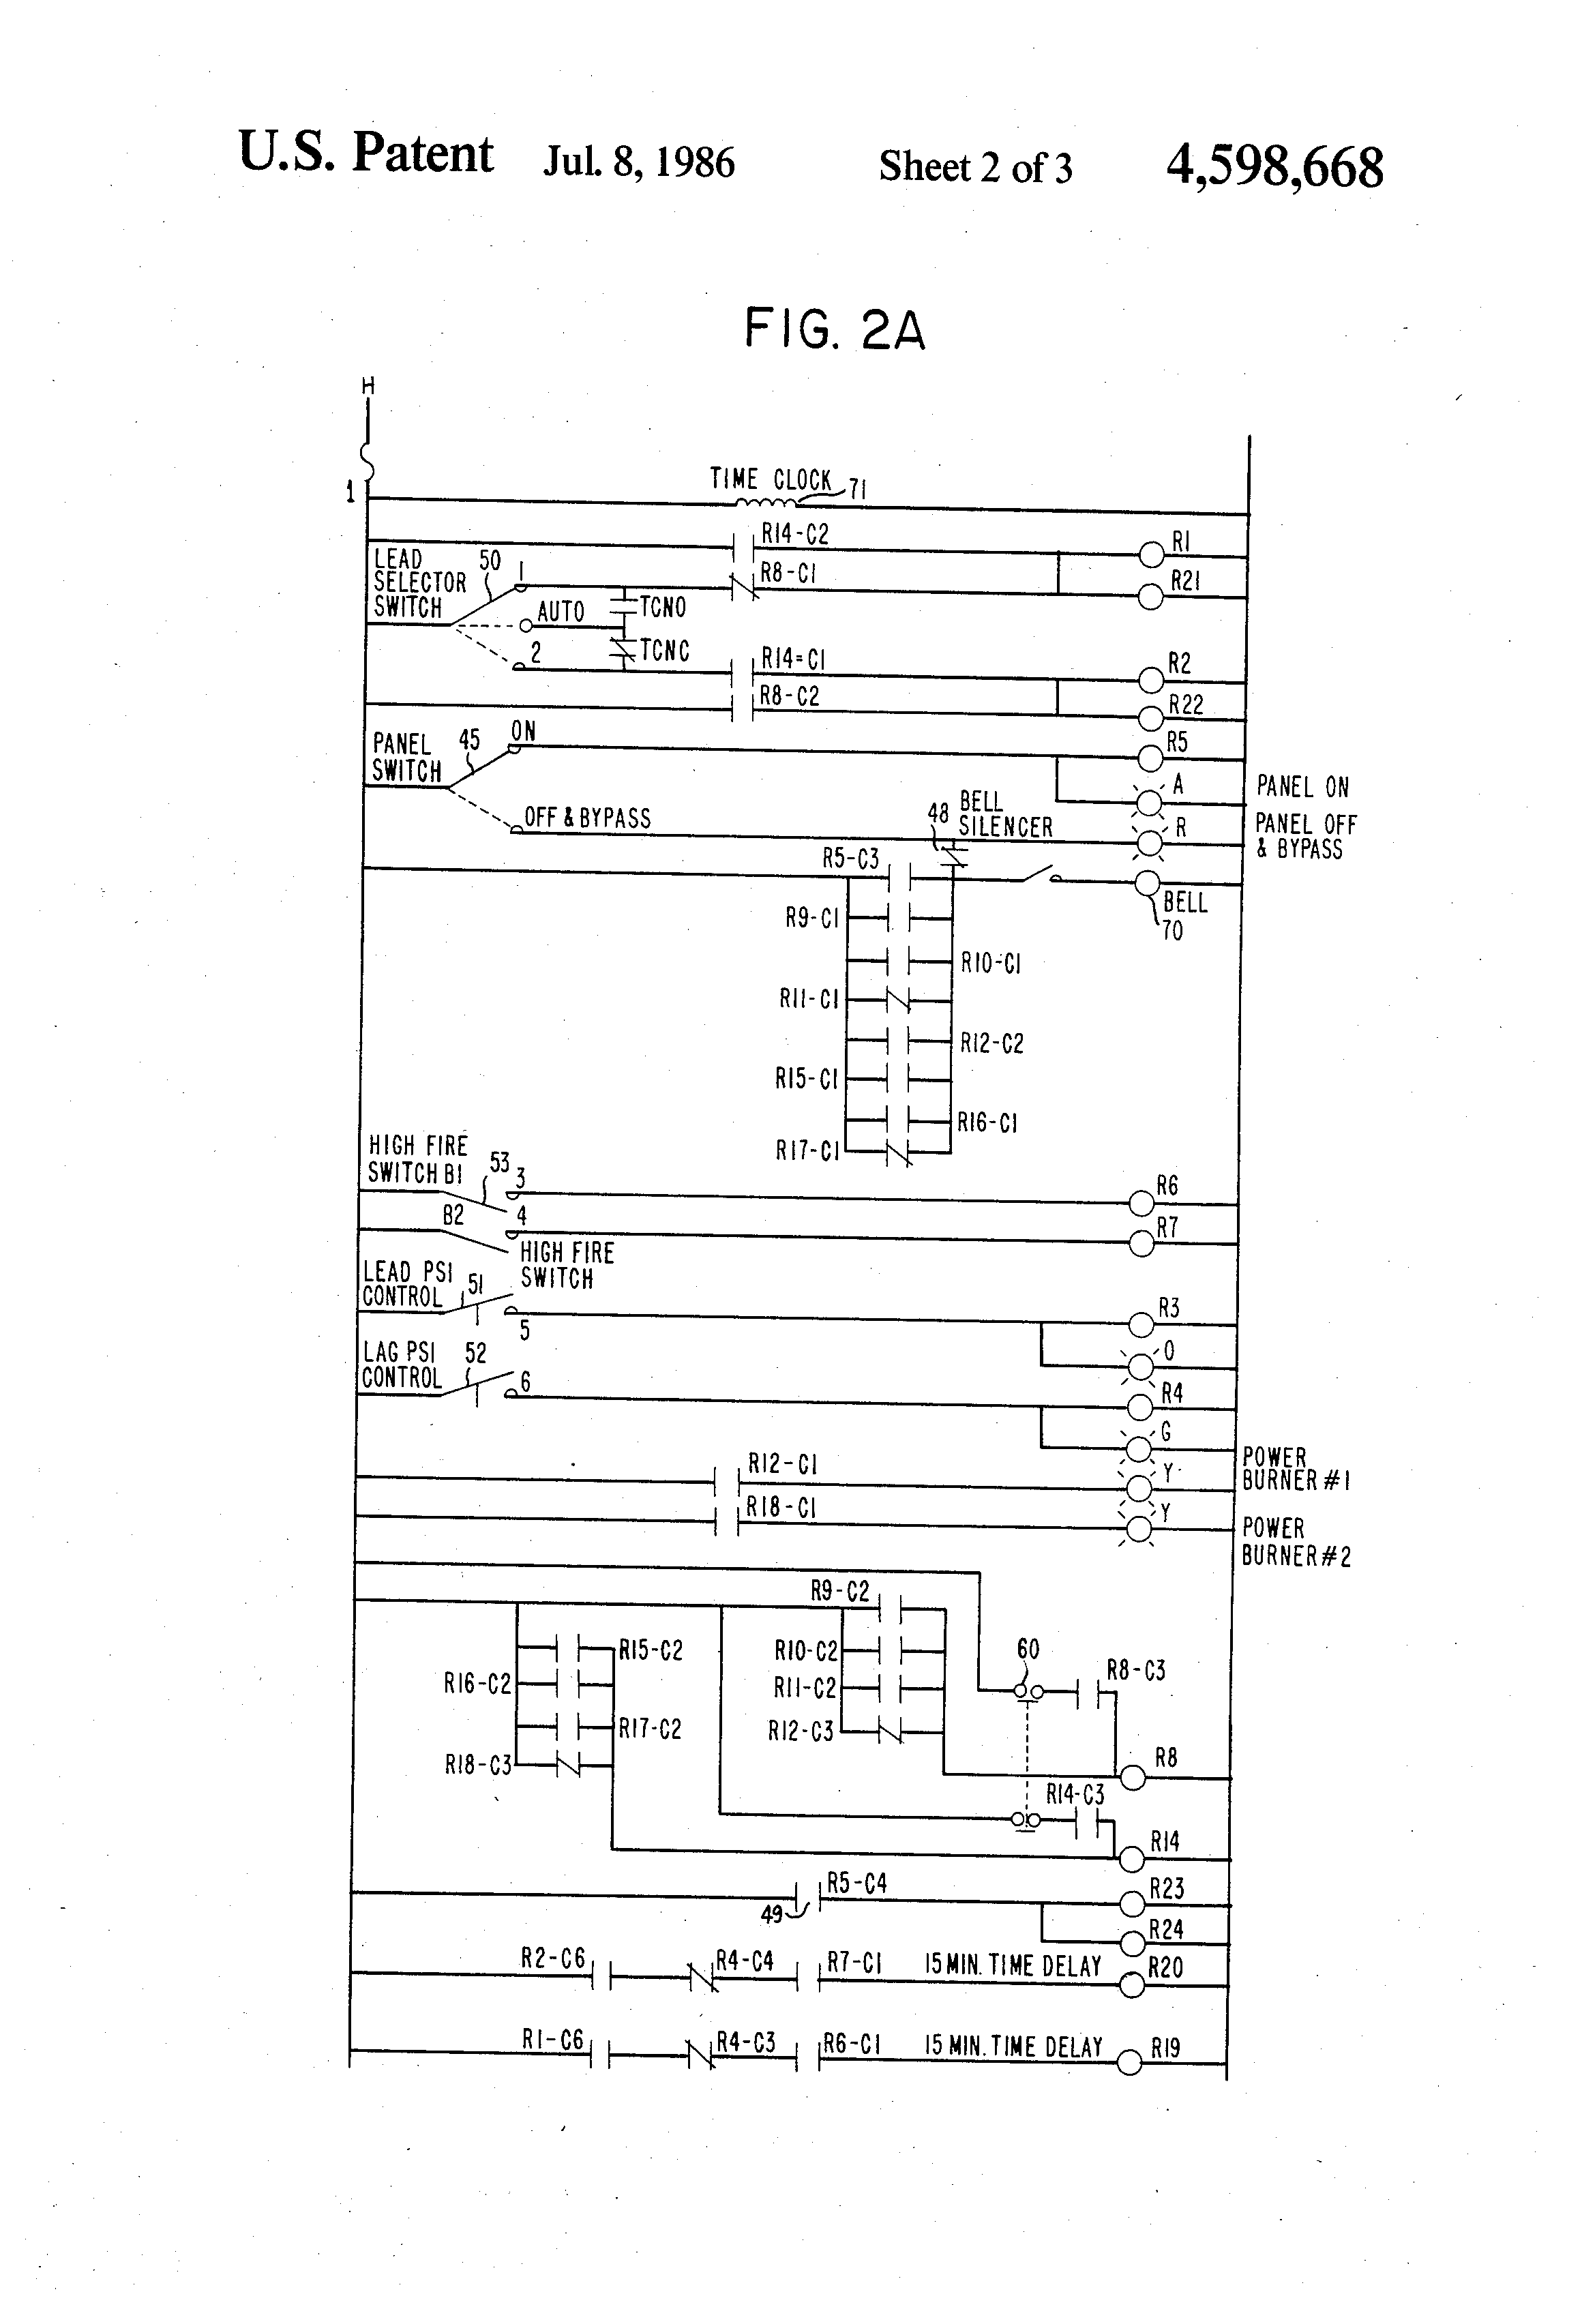 Boiler Control Panel Wiring Diagram : 35 Wiring Diagram